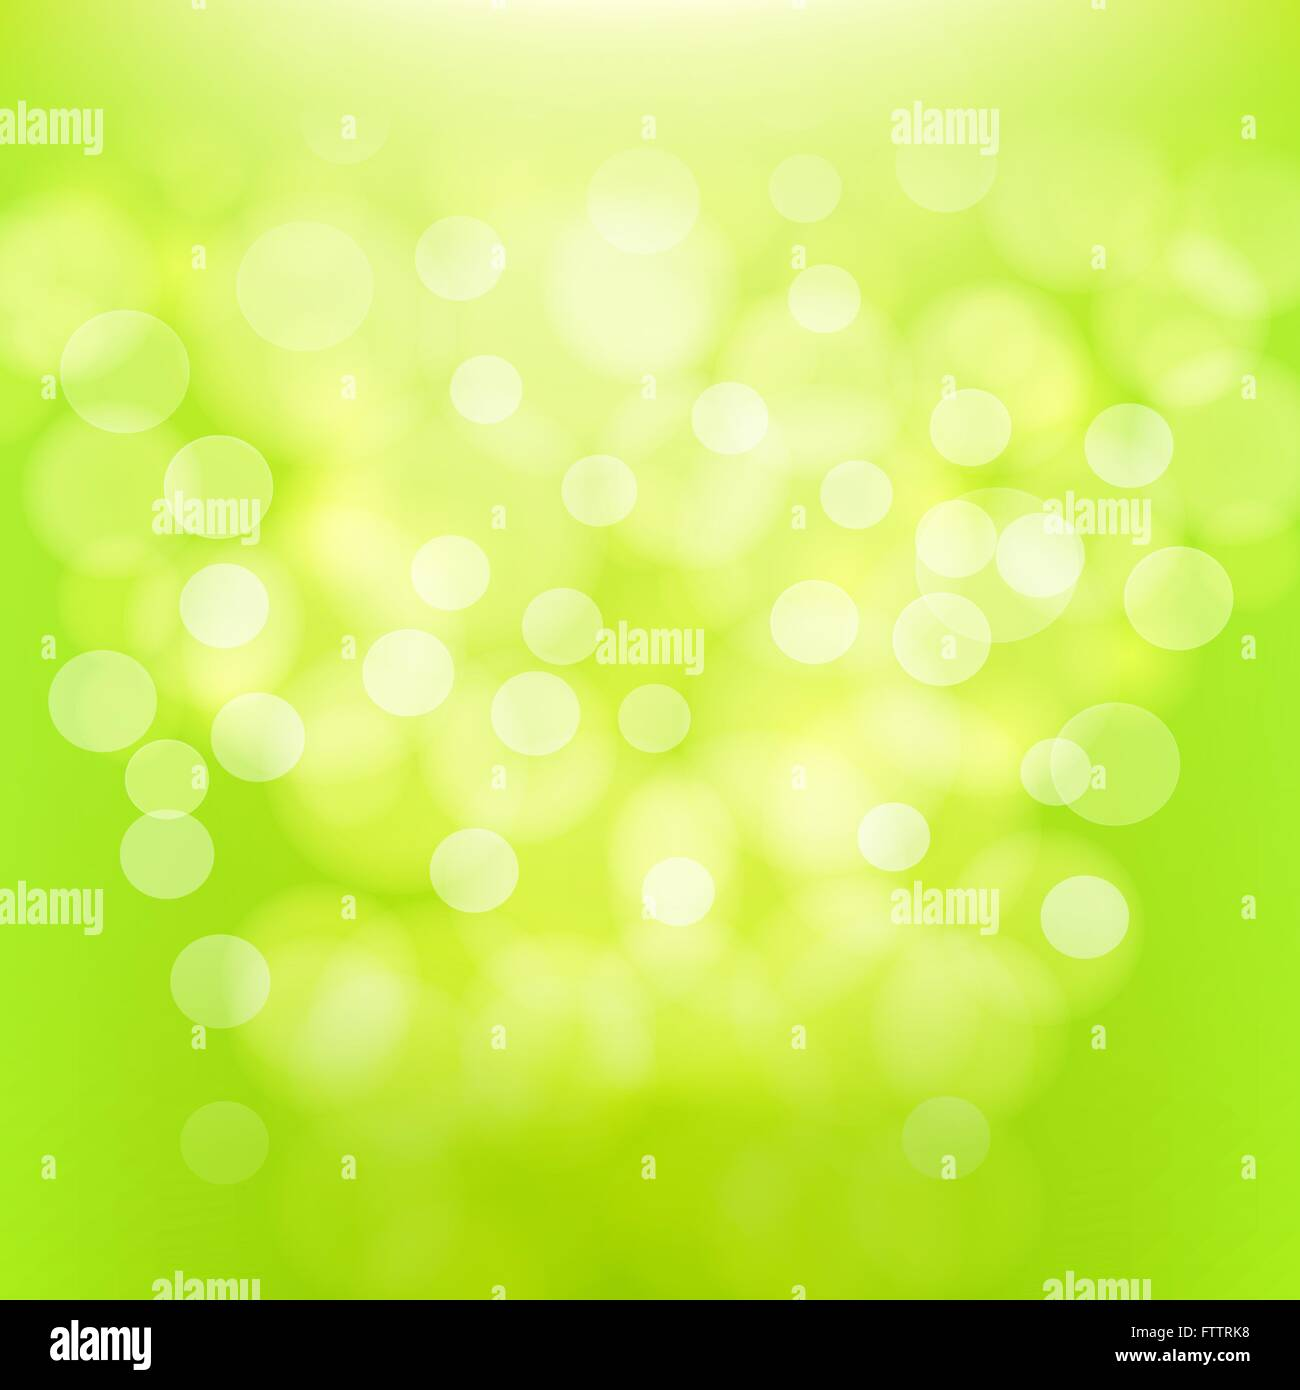 Abstract green blurred background. vector illustration - Stock Vector